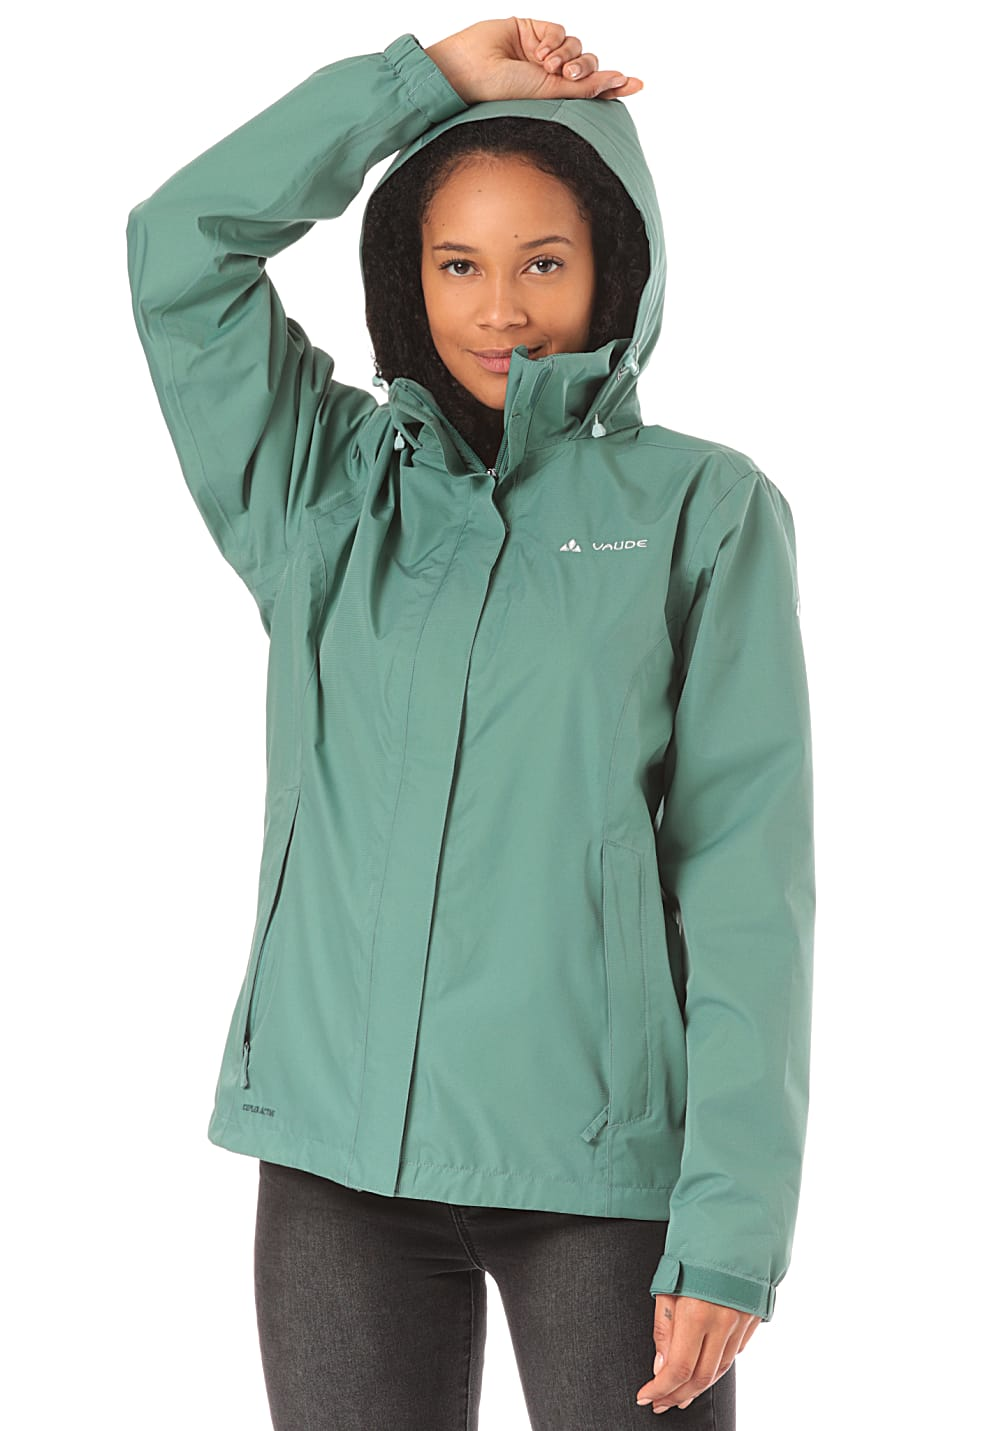 brand new 8e9a6 5a33f VAUDE Escape Light - Jacke für Damen - Grün